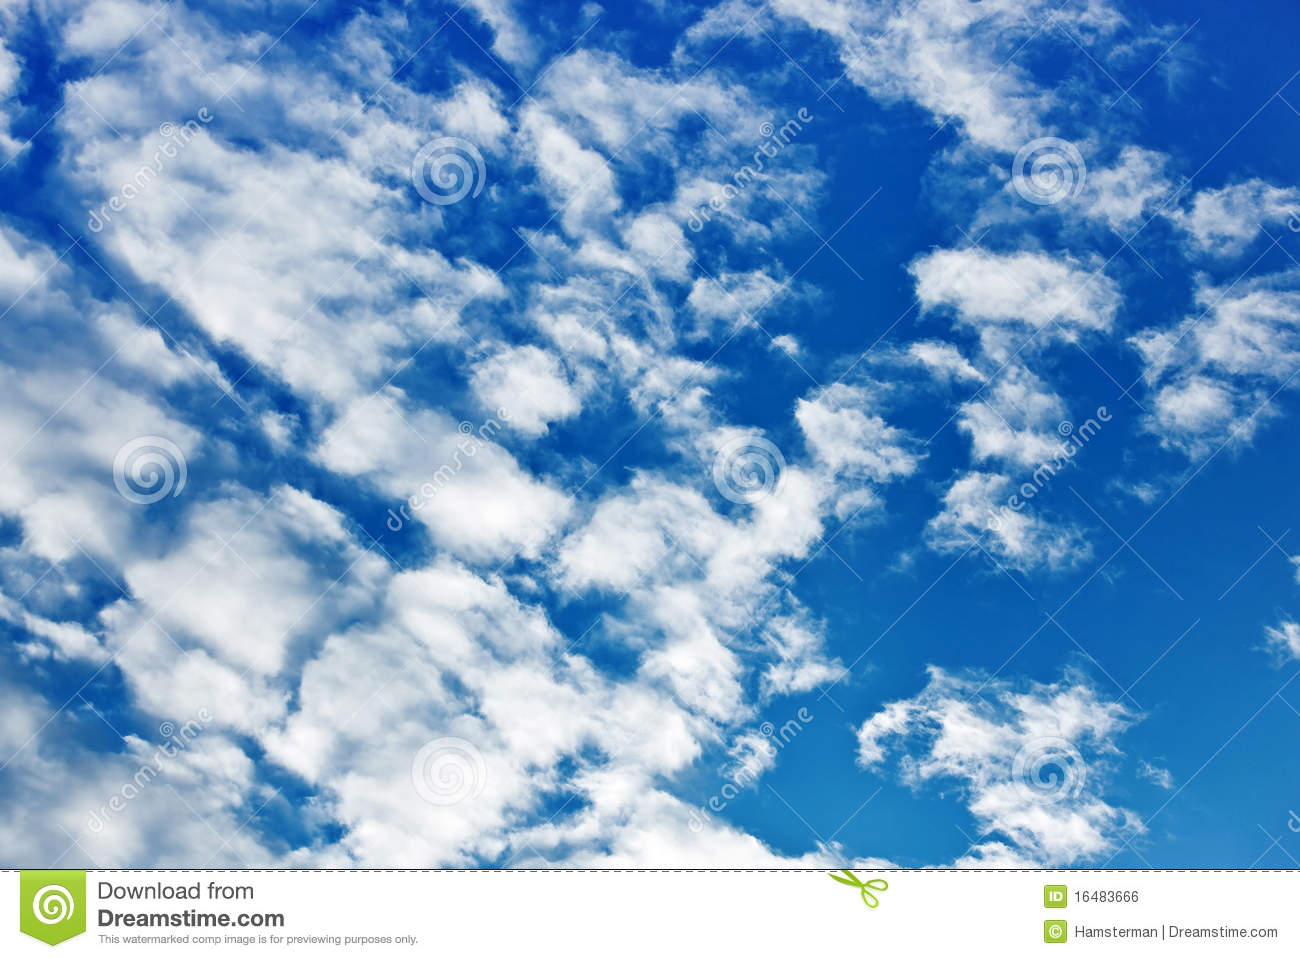 Fleecy Clouds Royalty Free Stock Image.